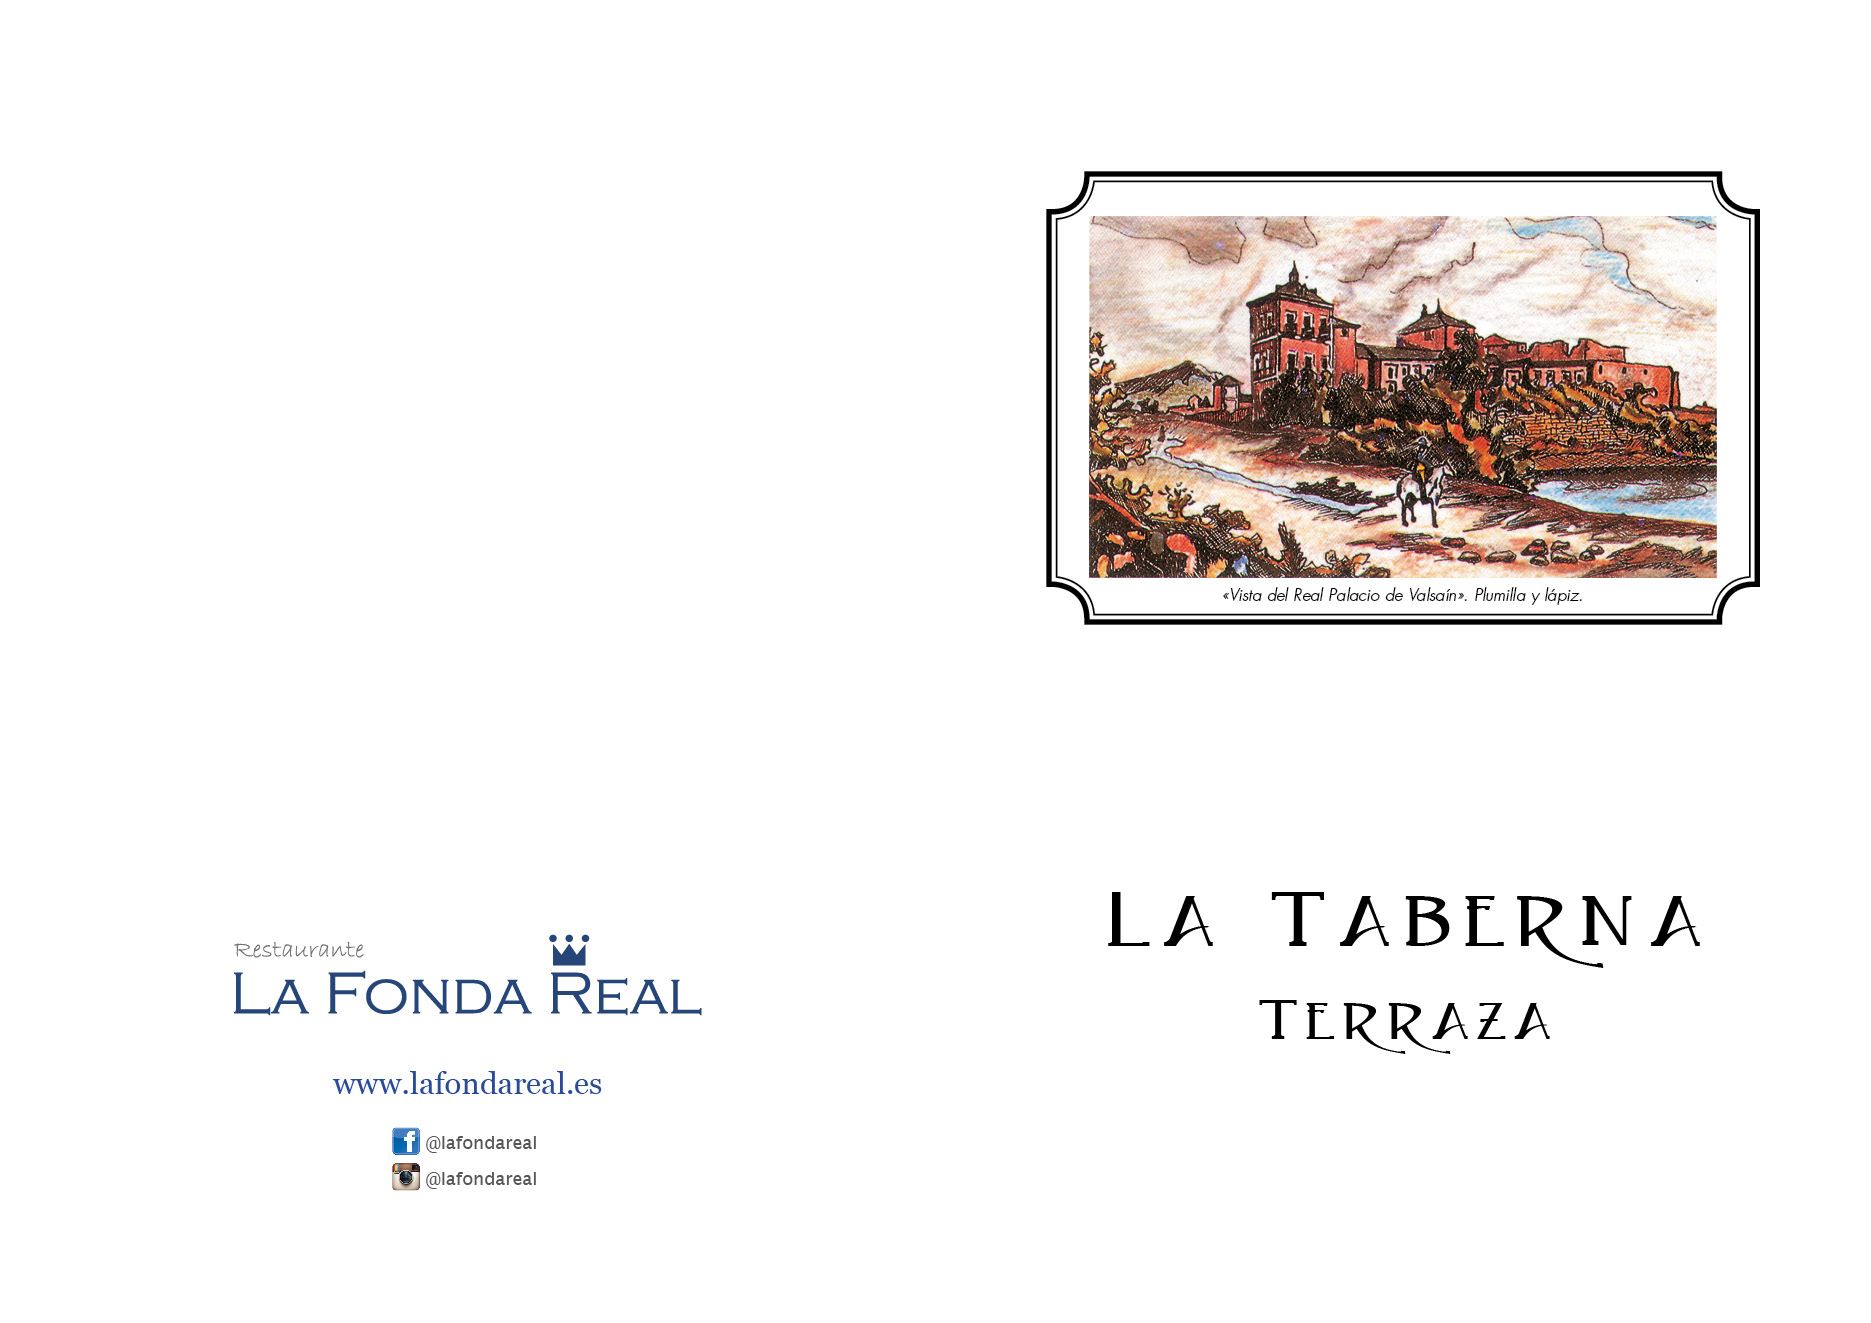 CARTA TABERNA [2018_oct]1